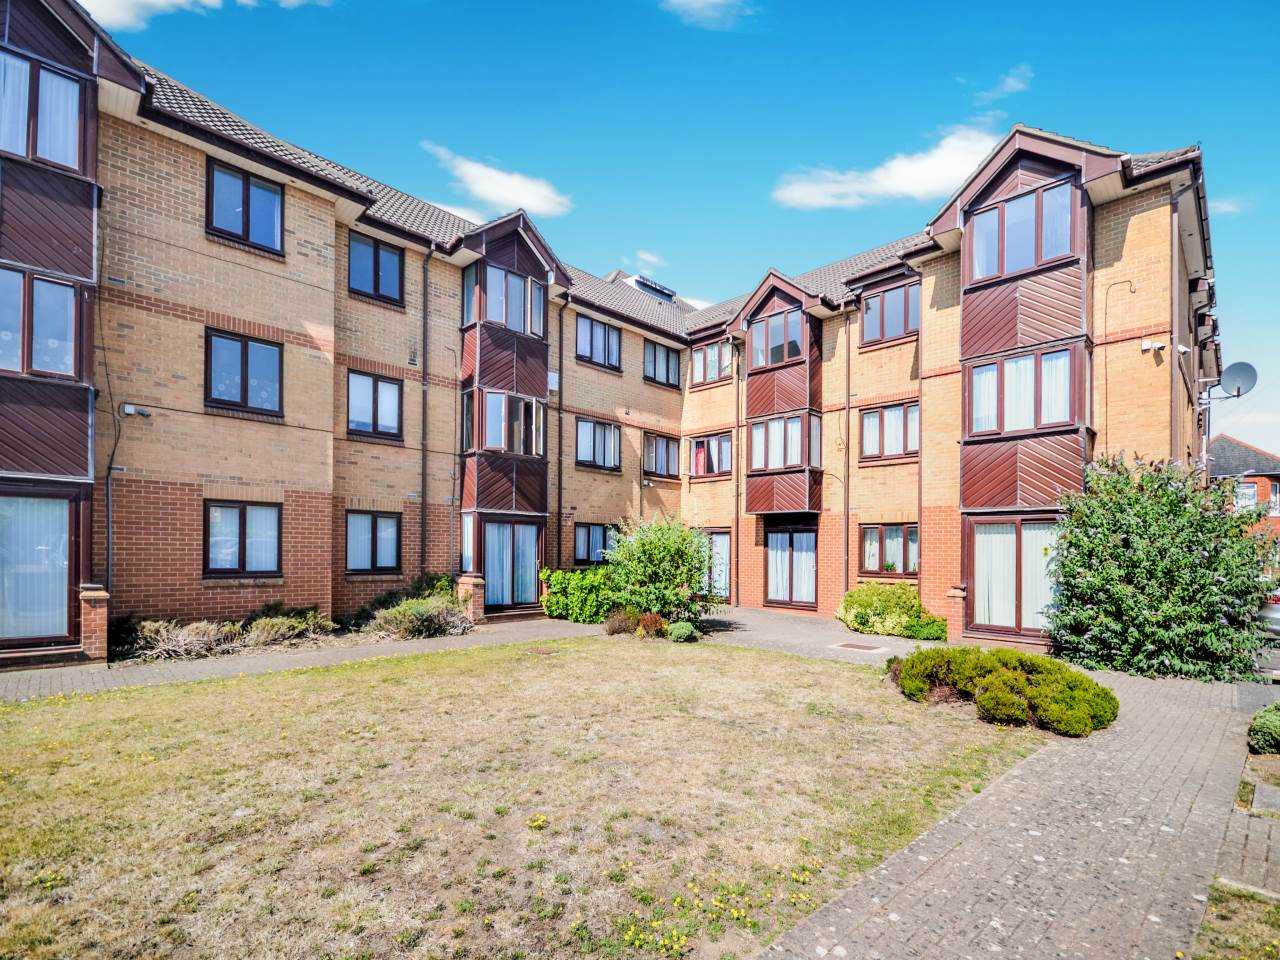 1 bed flat for sale in St Clements Court, 65 Cleveland Road - Property Image 1